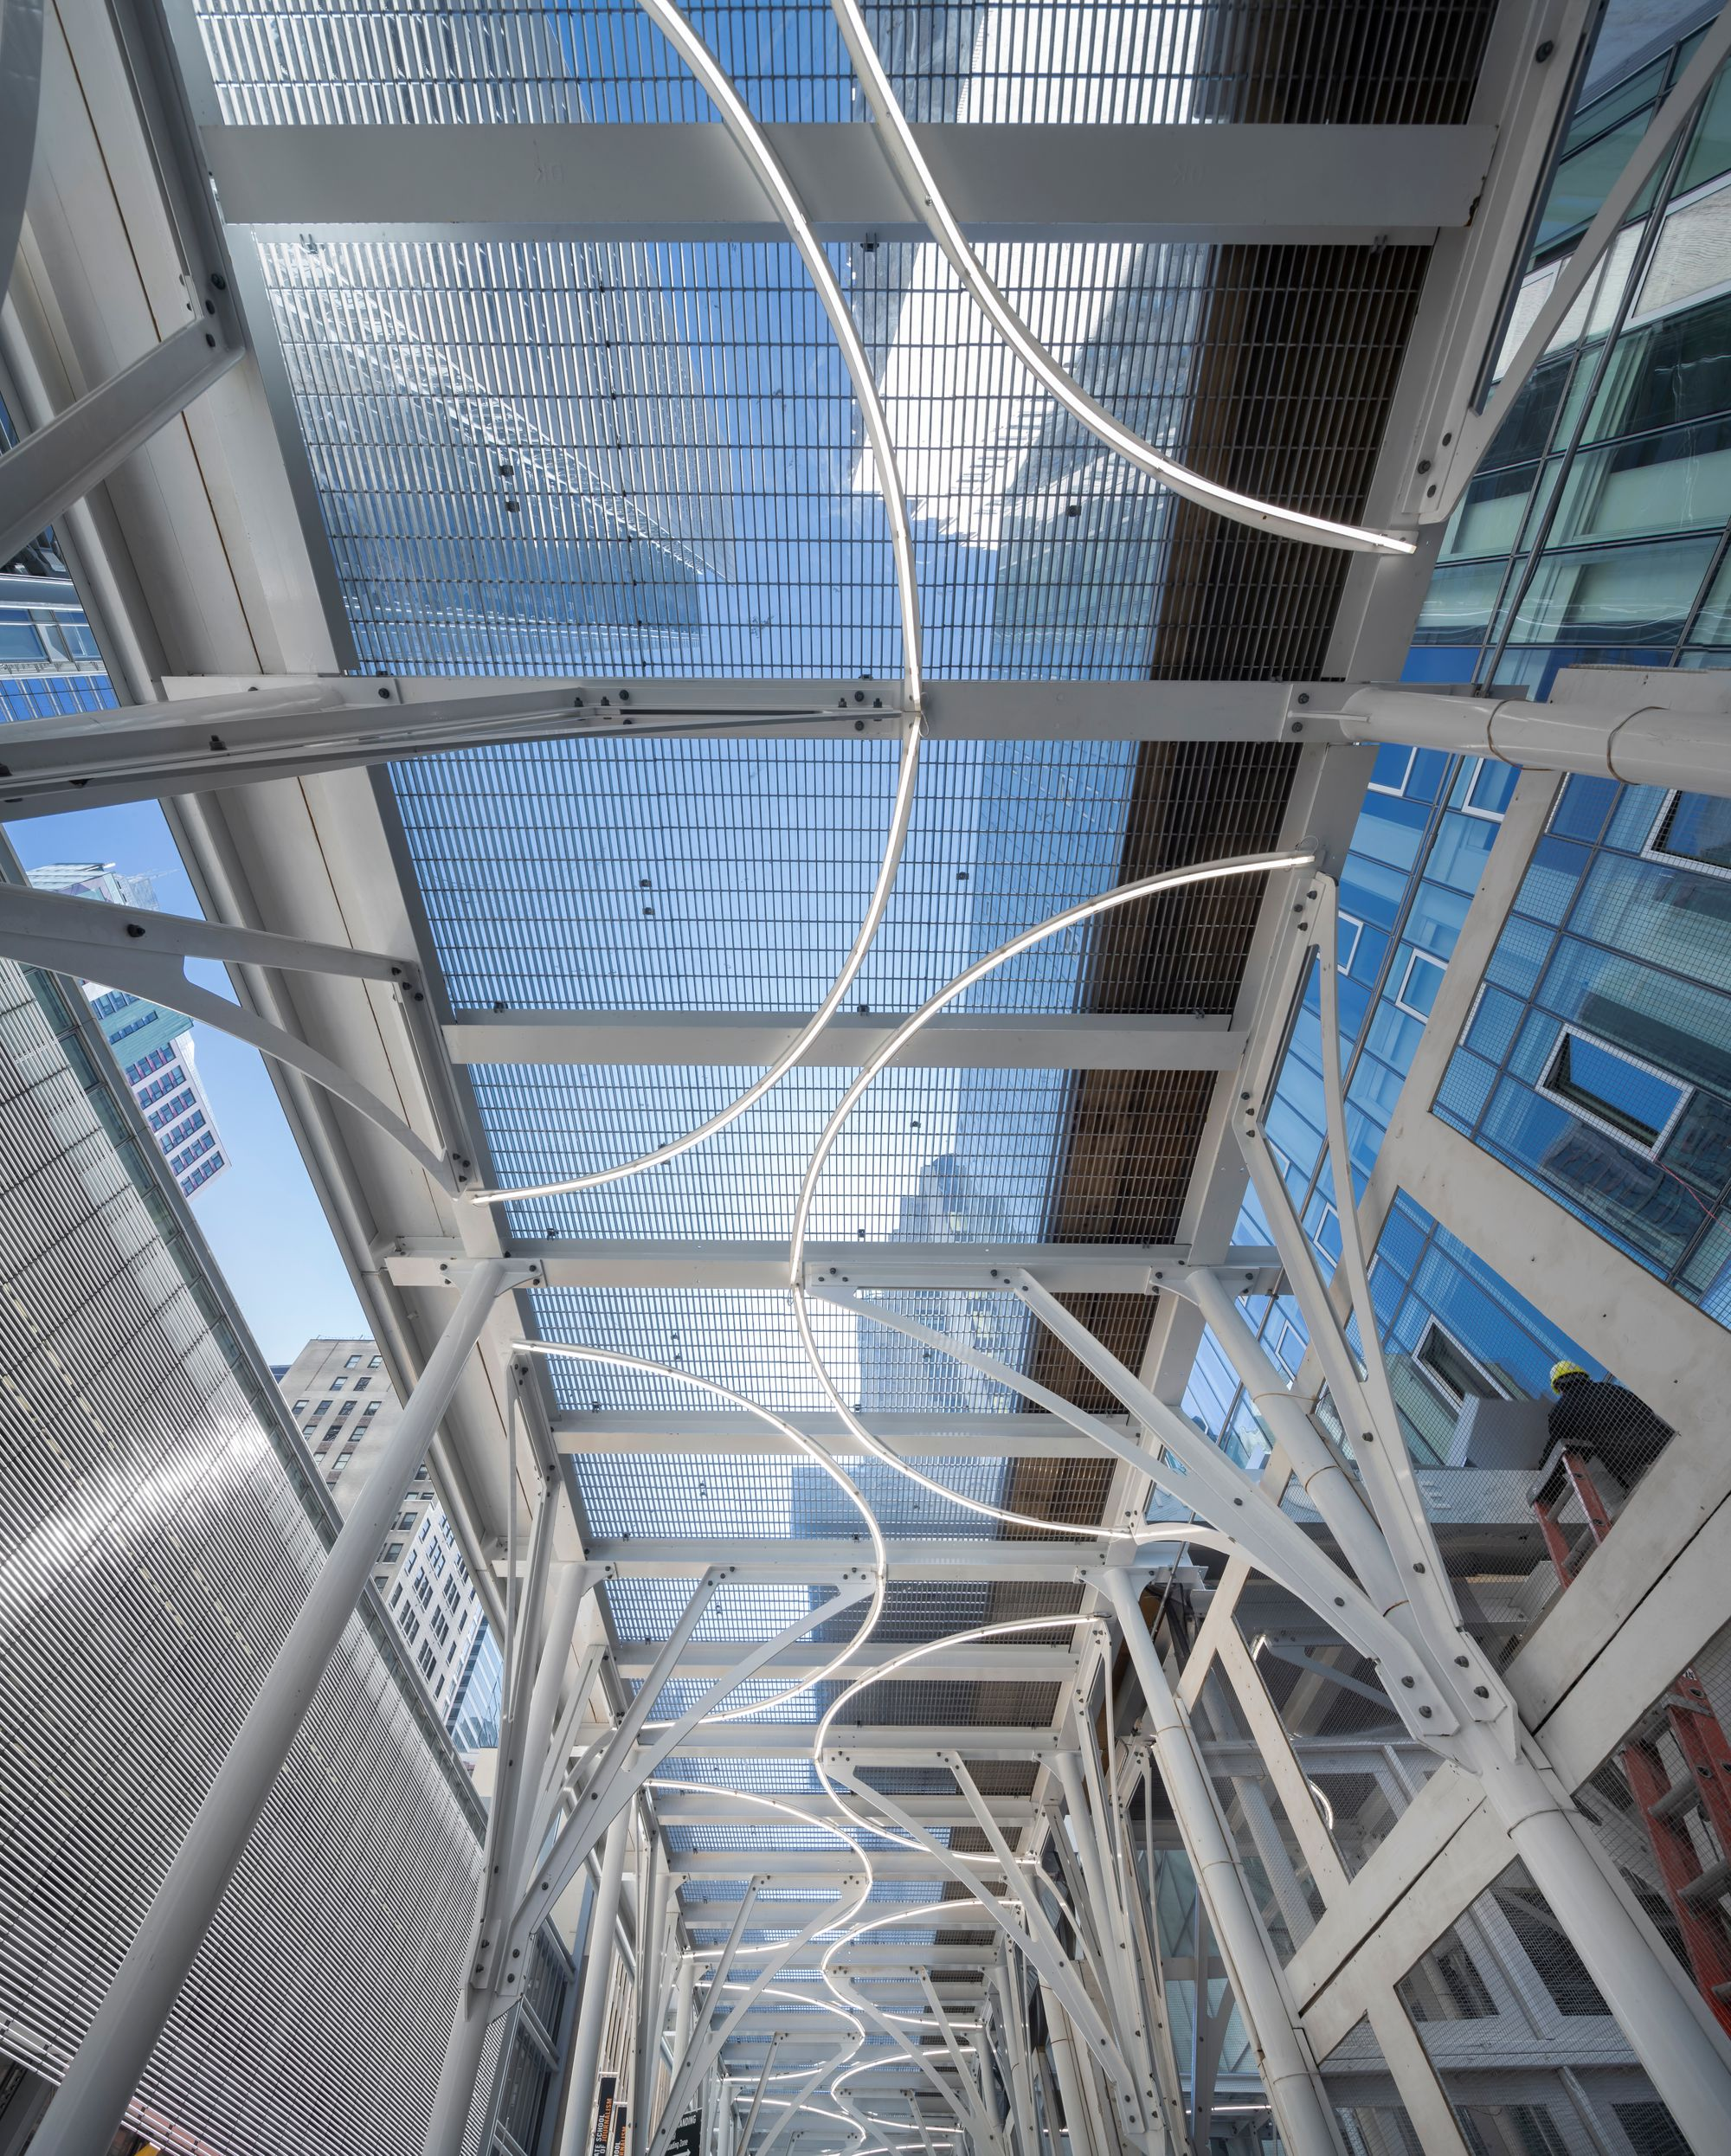 Urban Umbrella ceilings, assembled with McNICHOLS® Bar Grating and translucent plastic, enable skyward views and the passage of light.